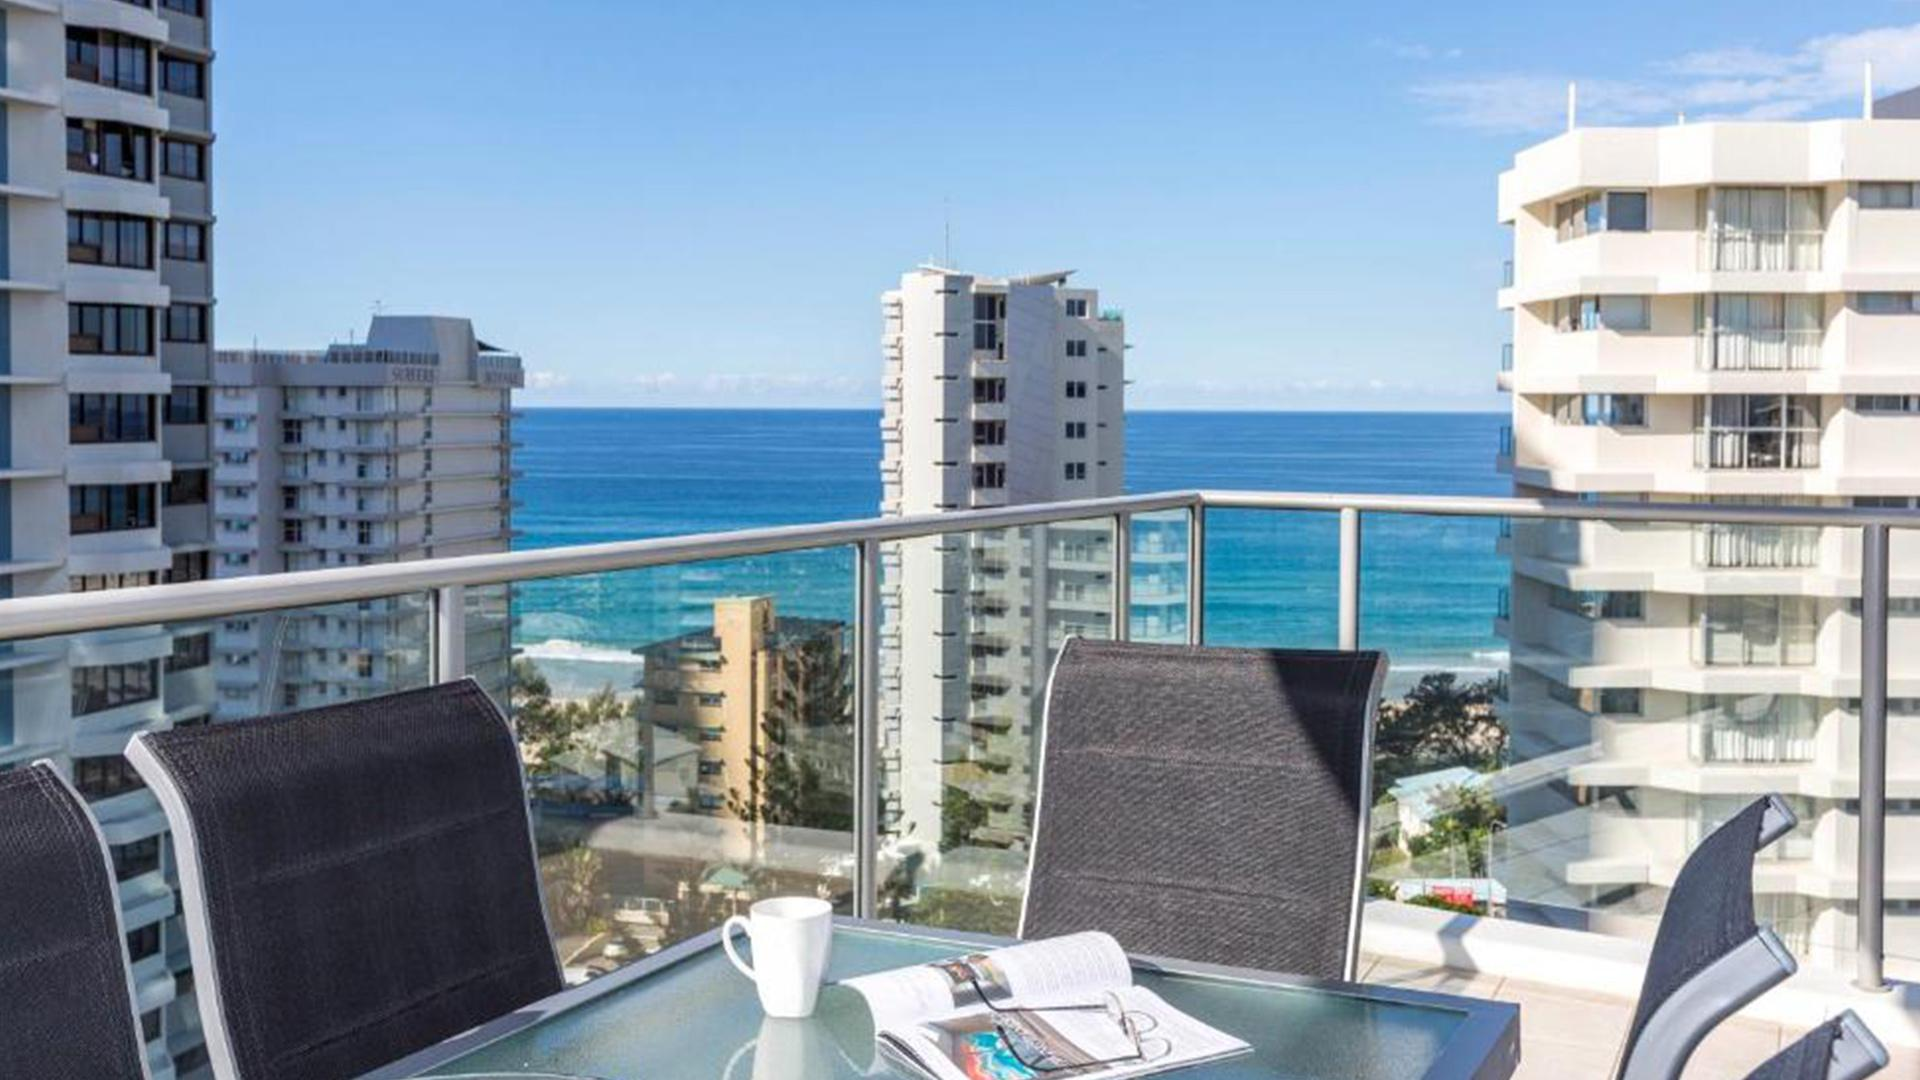 Two-Bedroom Partial Ocean View image 1 at Artique Surfers Paradise by City of Gold Coast, Queensland, Australia